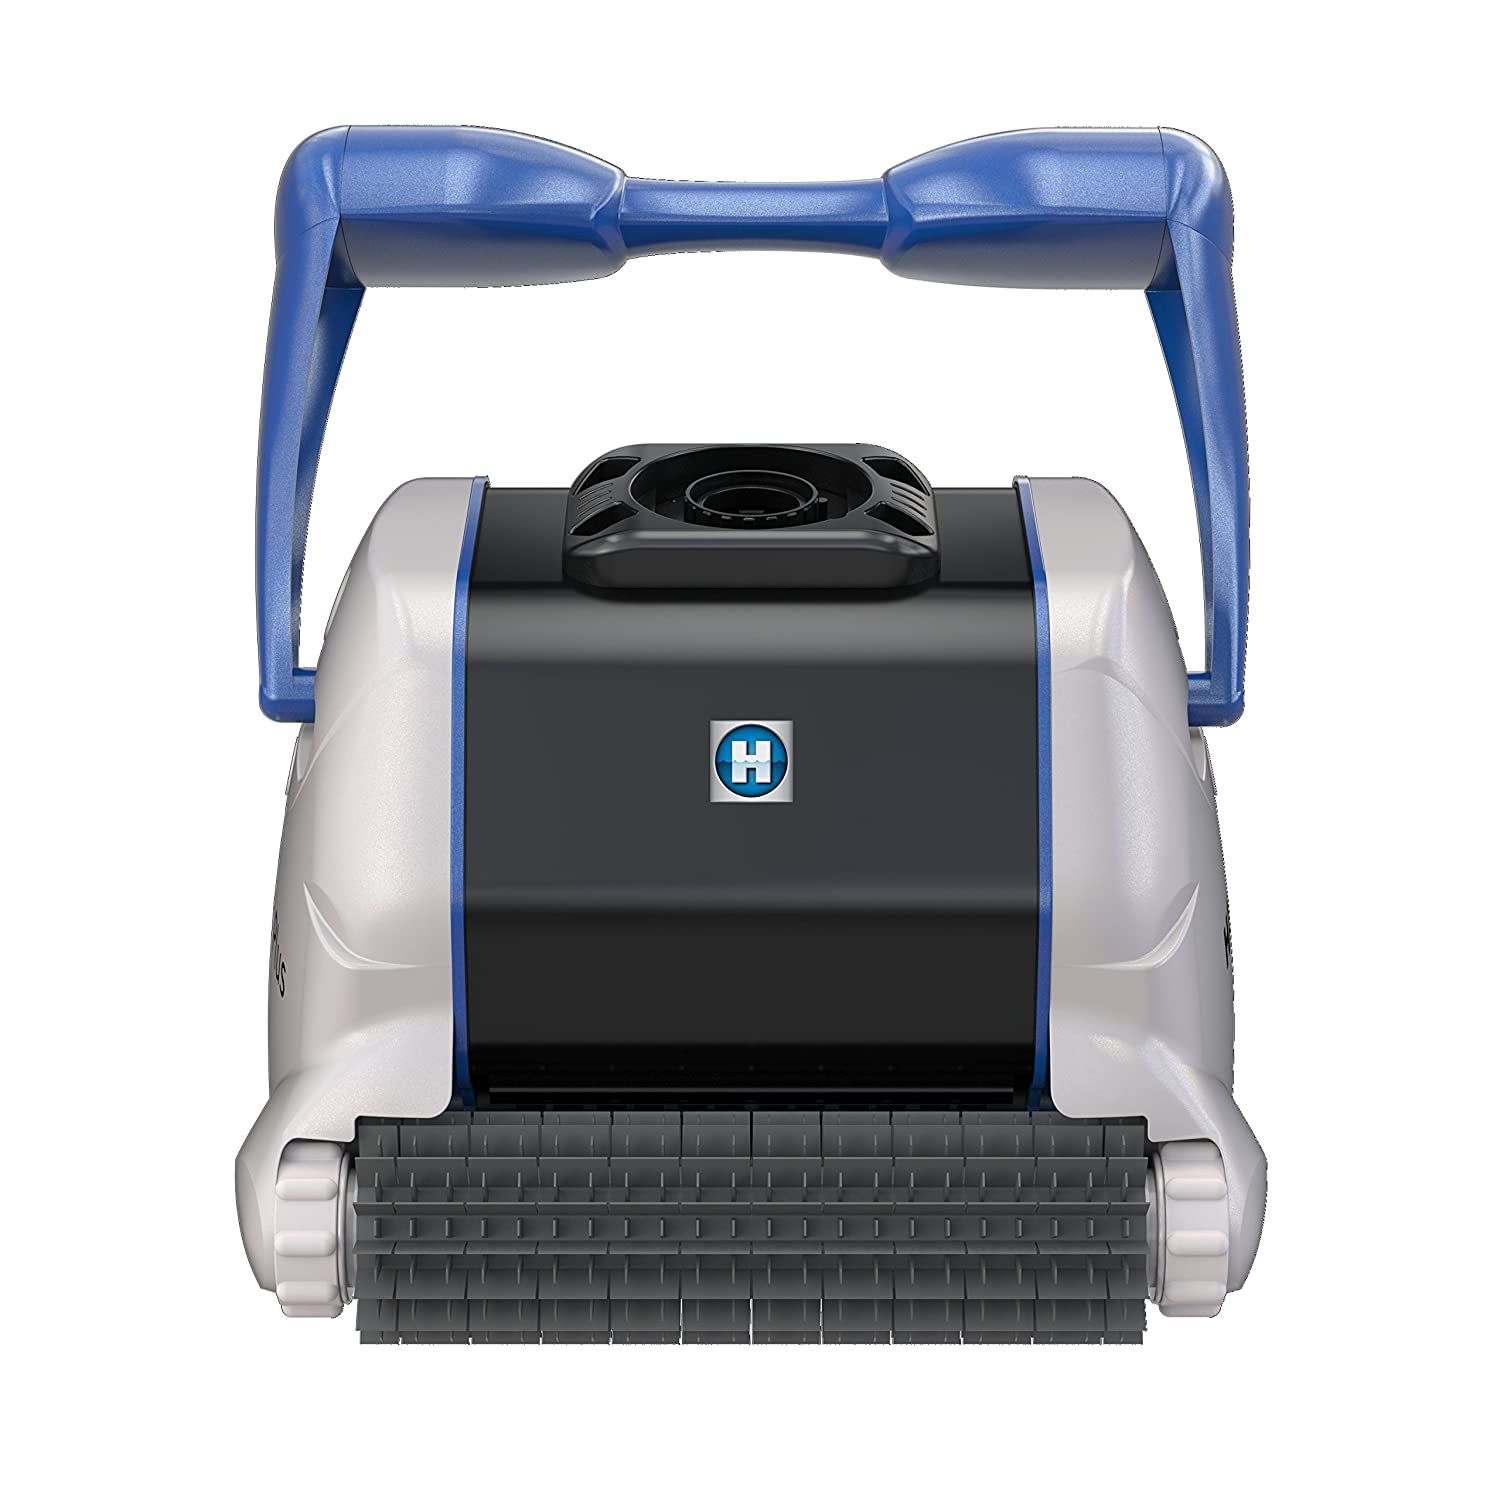 Hayward RC9955CUB TigerShark Robotic Pool Vacuum Automatic Pool Cleaner